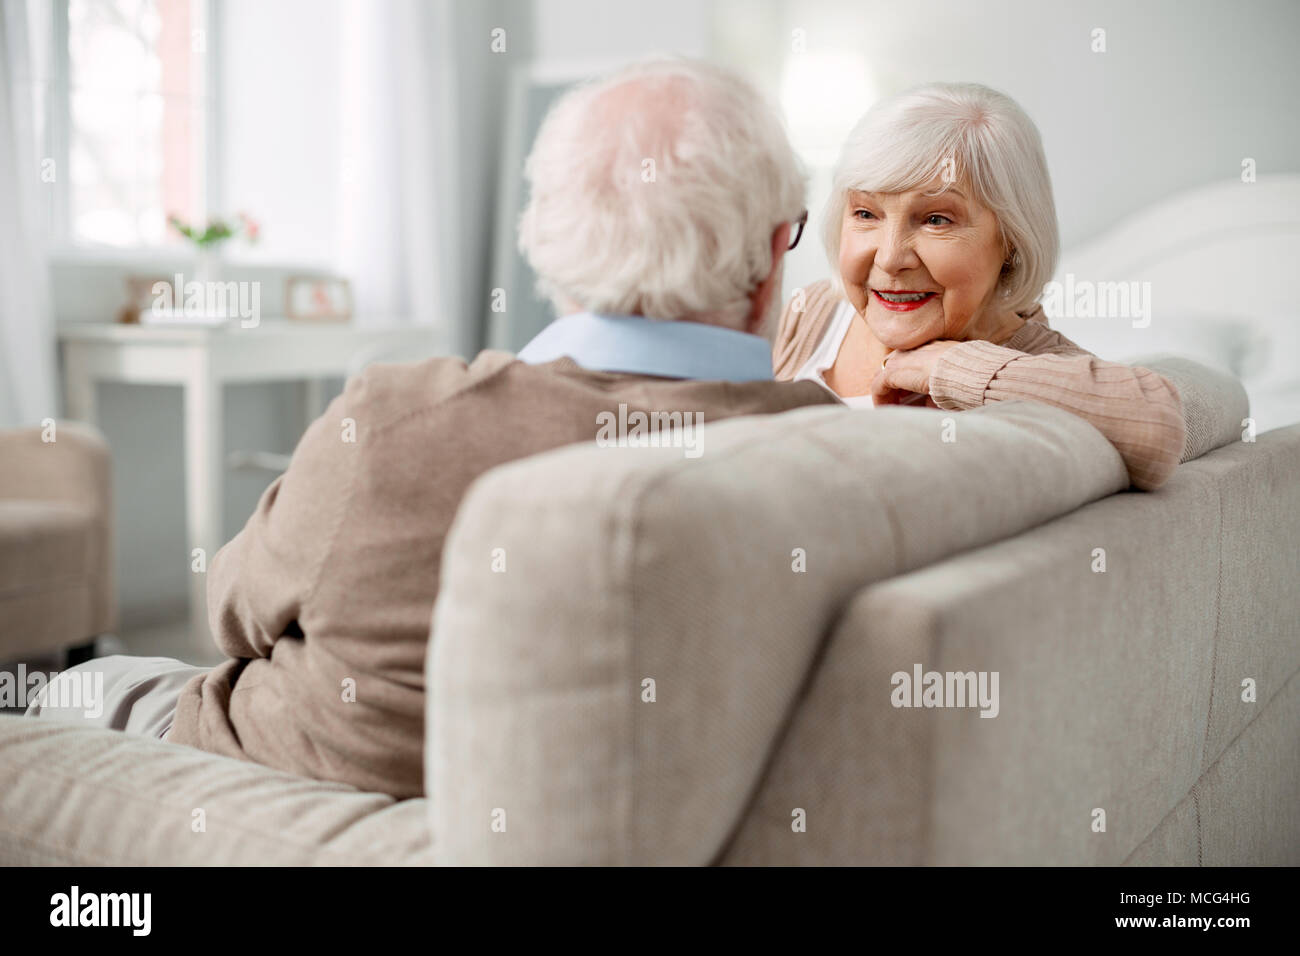 Positive senior woman looking at her husbands face - Stock Image